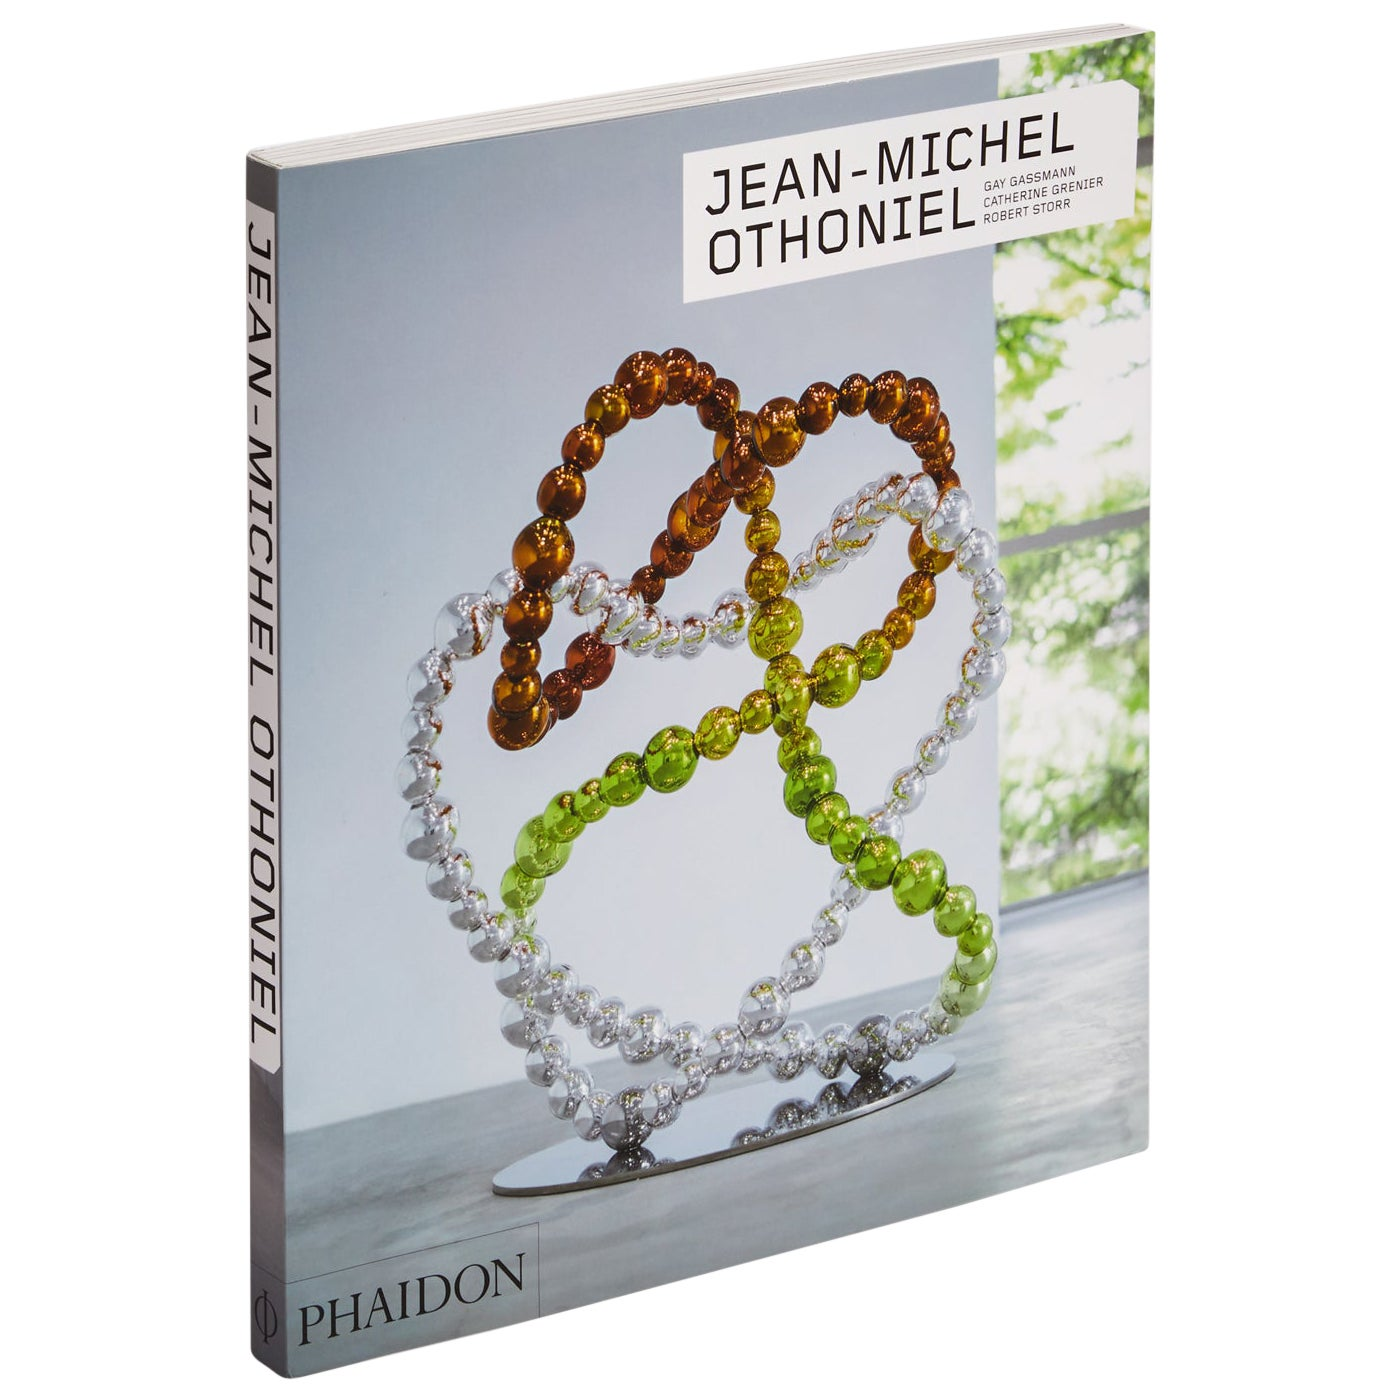 Jean-Michel Othoniel 'Phaidon Contemporary Artists Series'